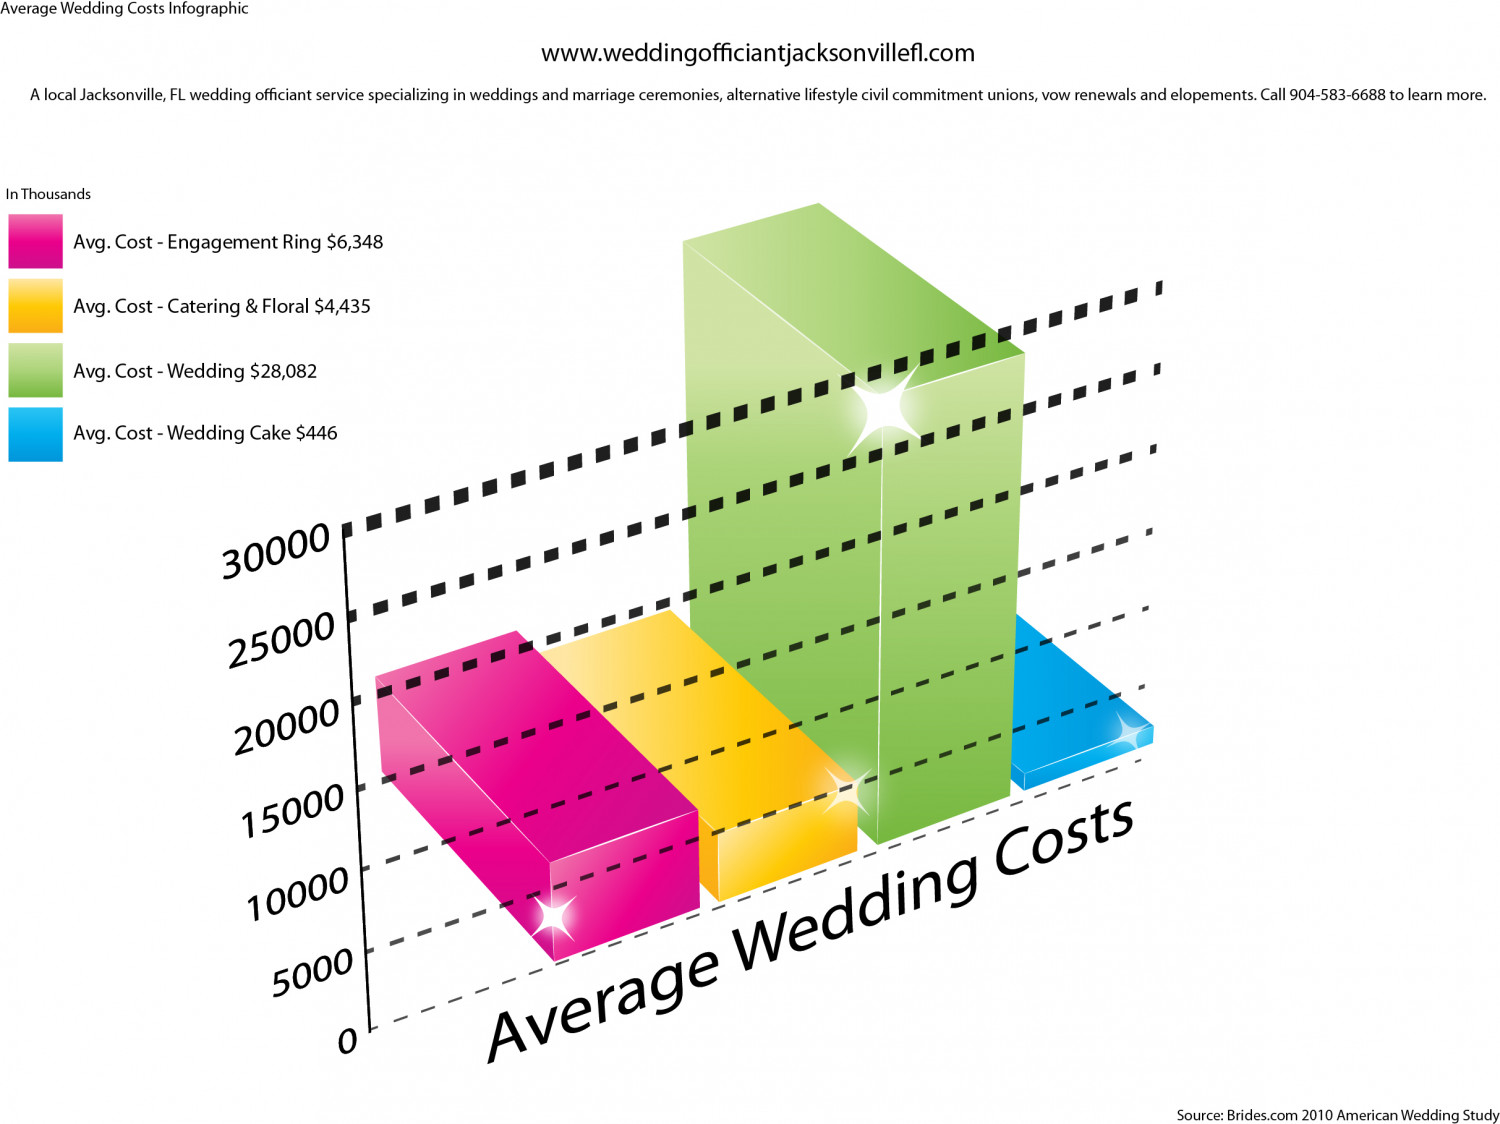 Average Cost of Weddings Infographic